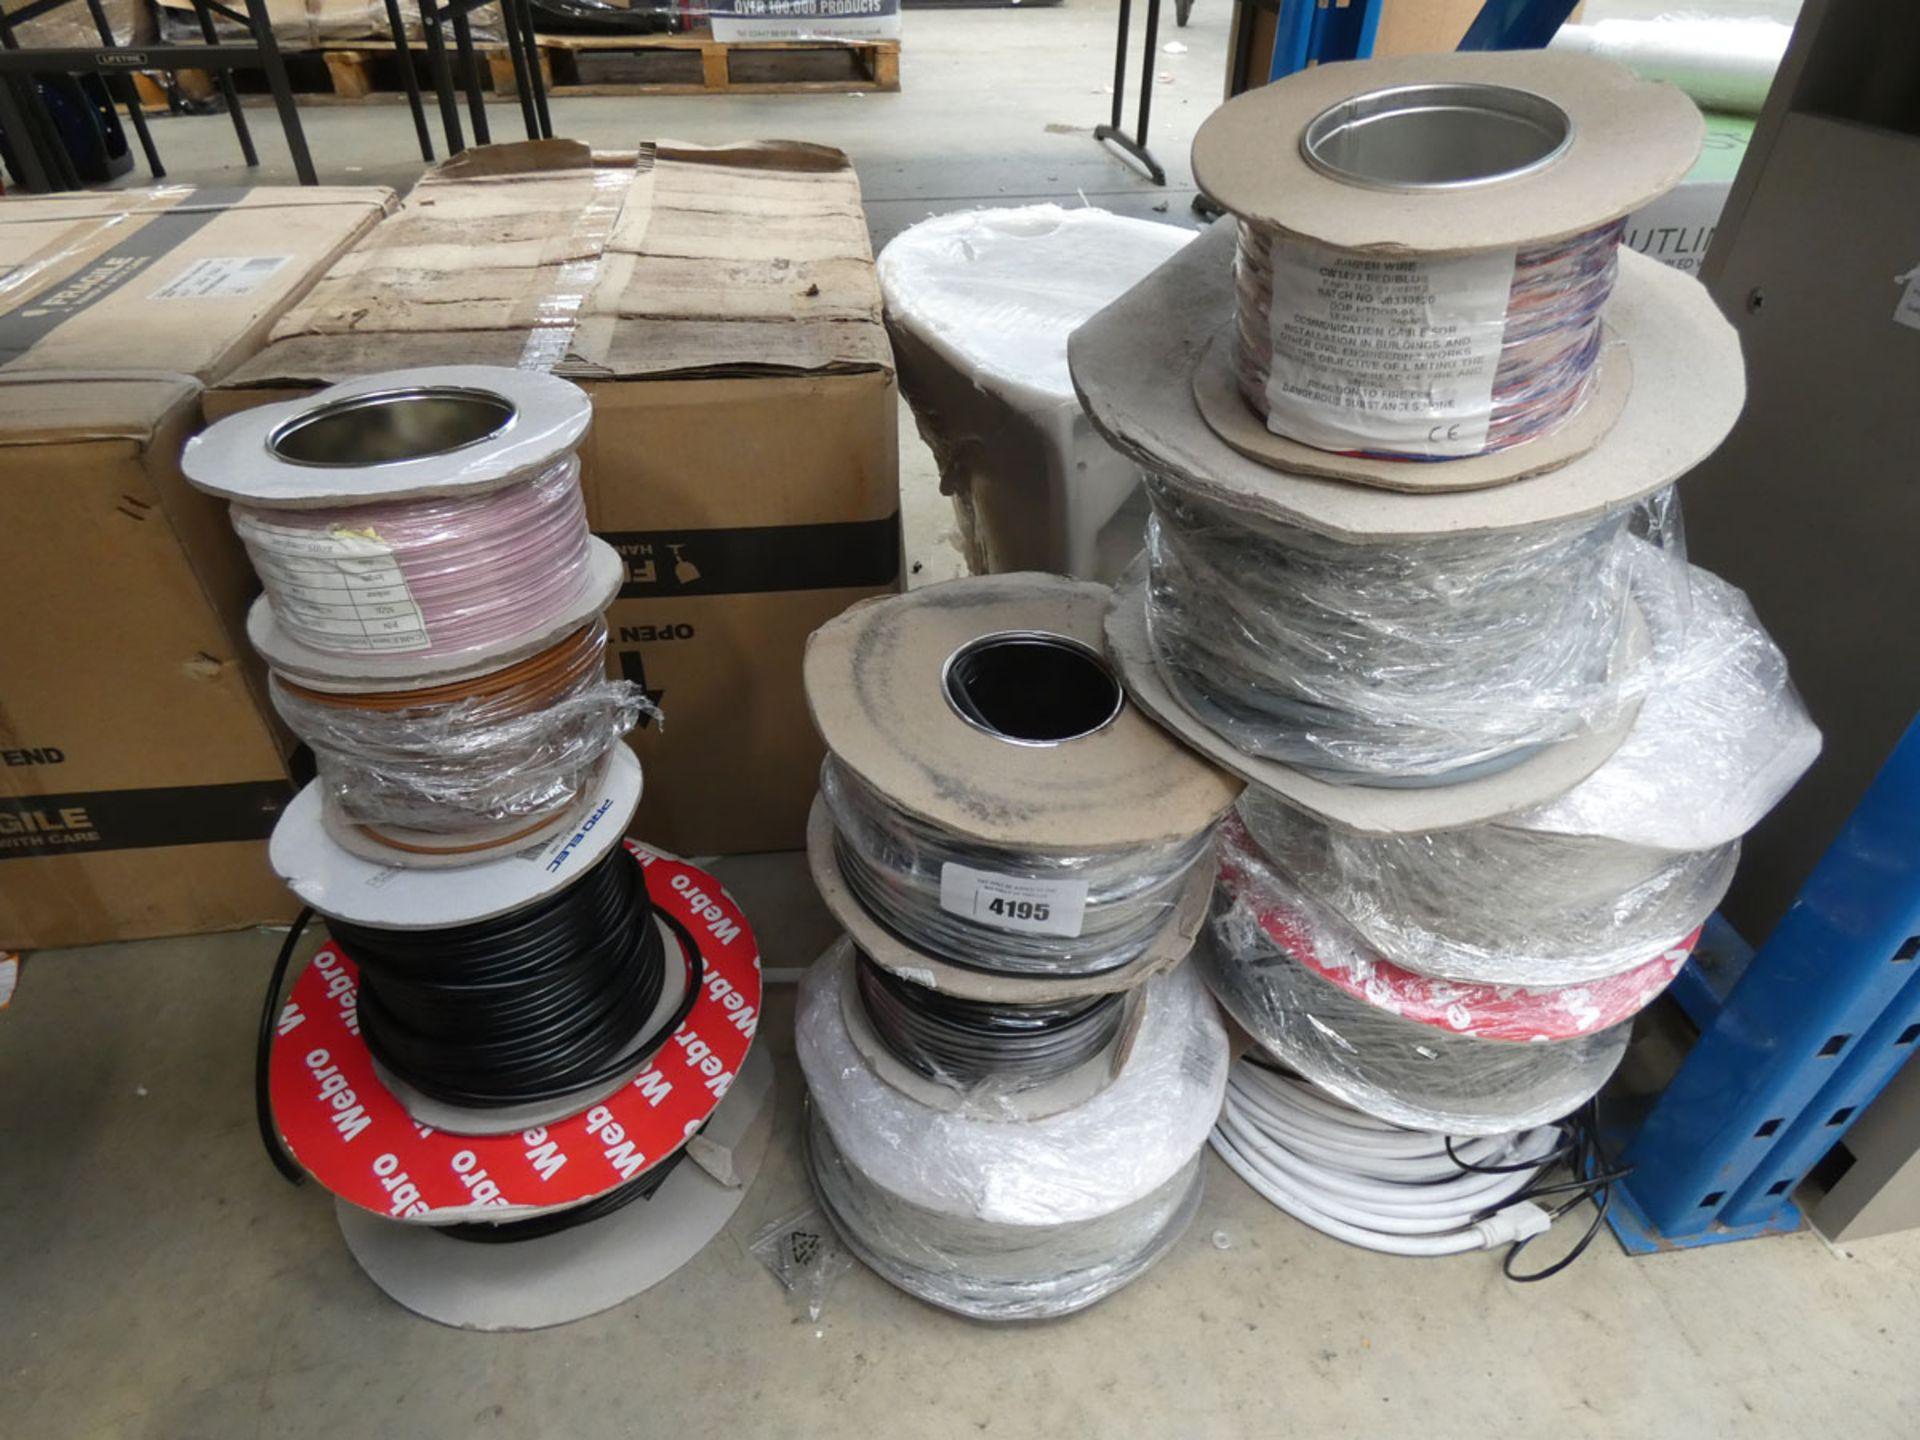 12 rolls of assorted cable